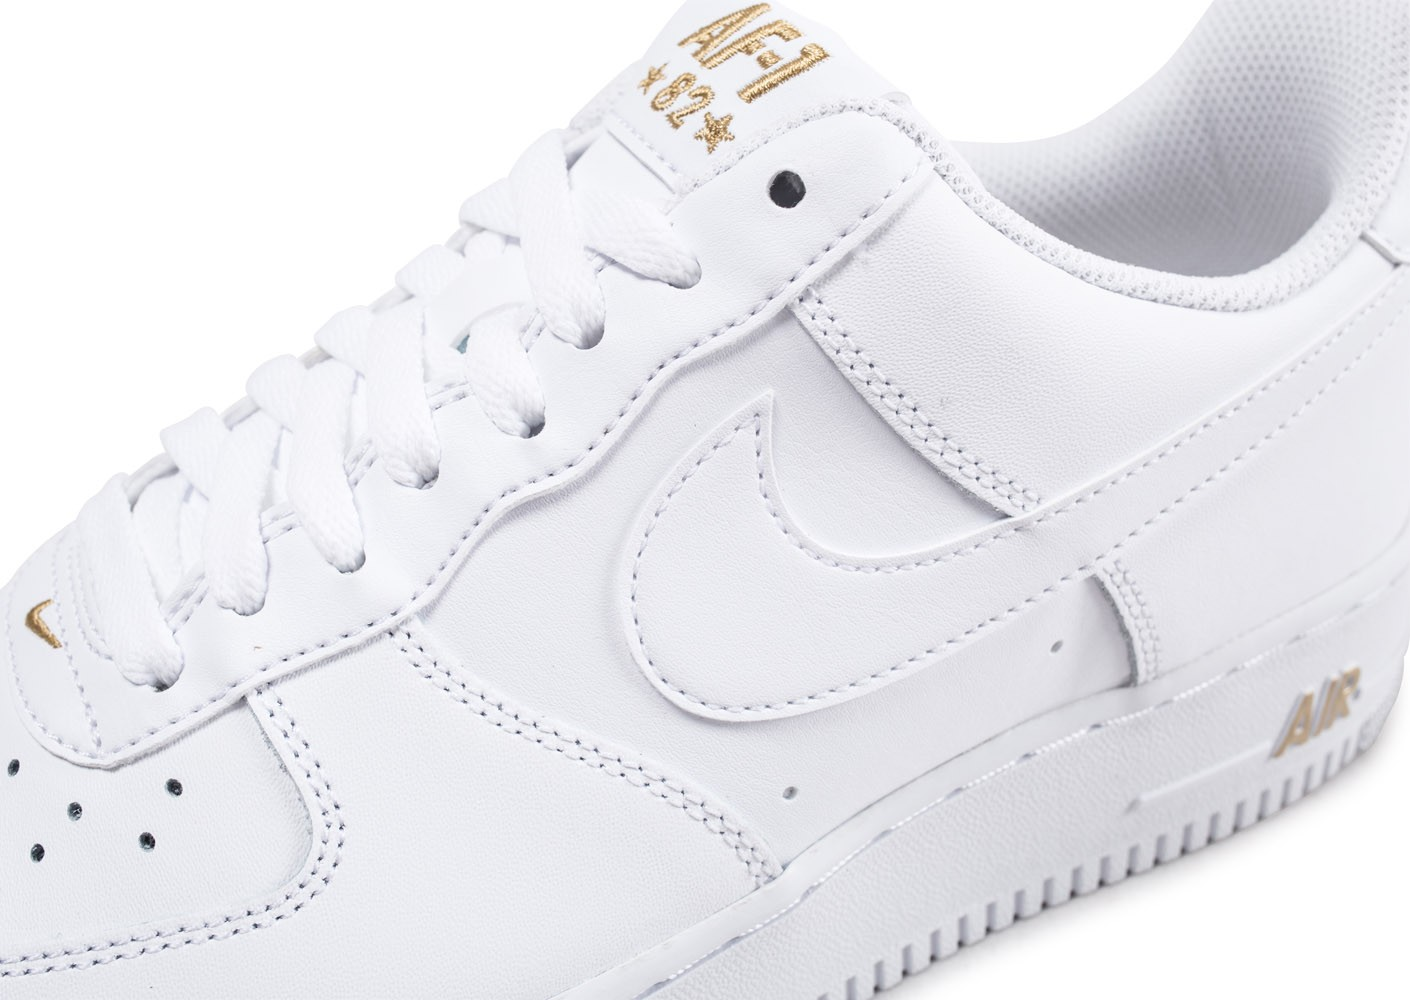 bd066068657 Nike Air Force 1  07 Low Blanche et or - Chaussures Baskets homme ...